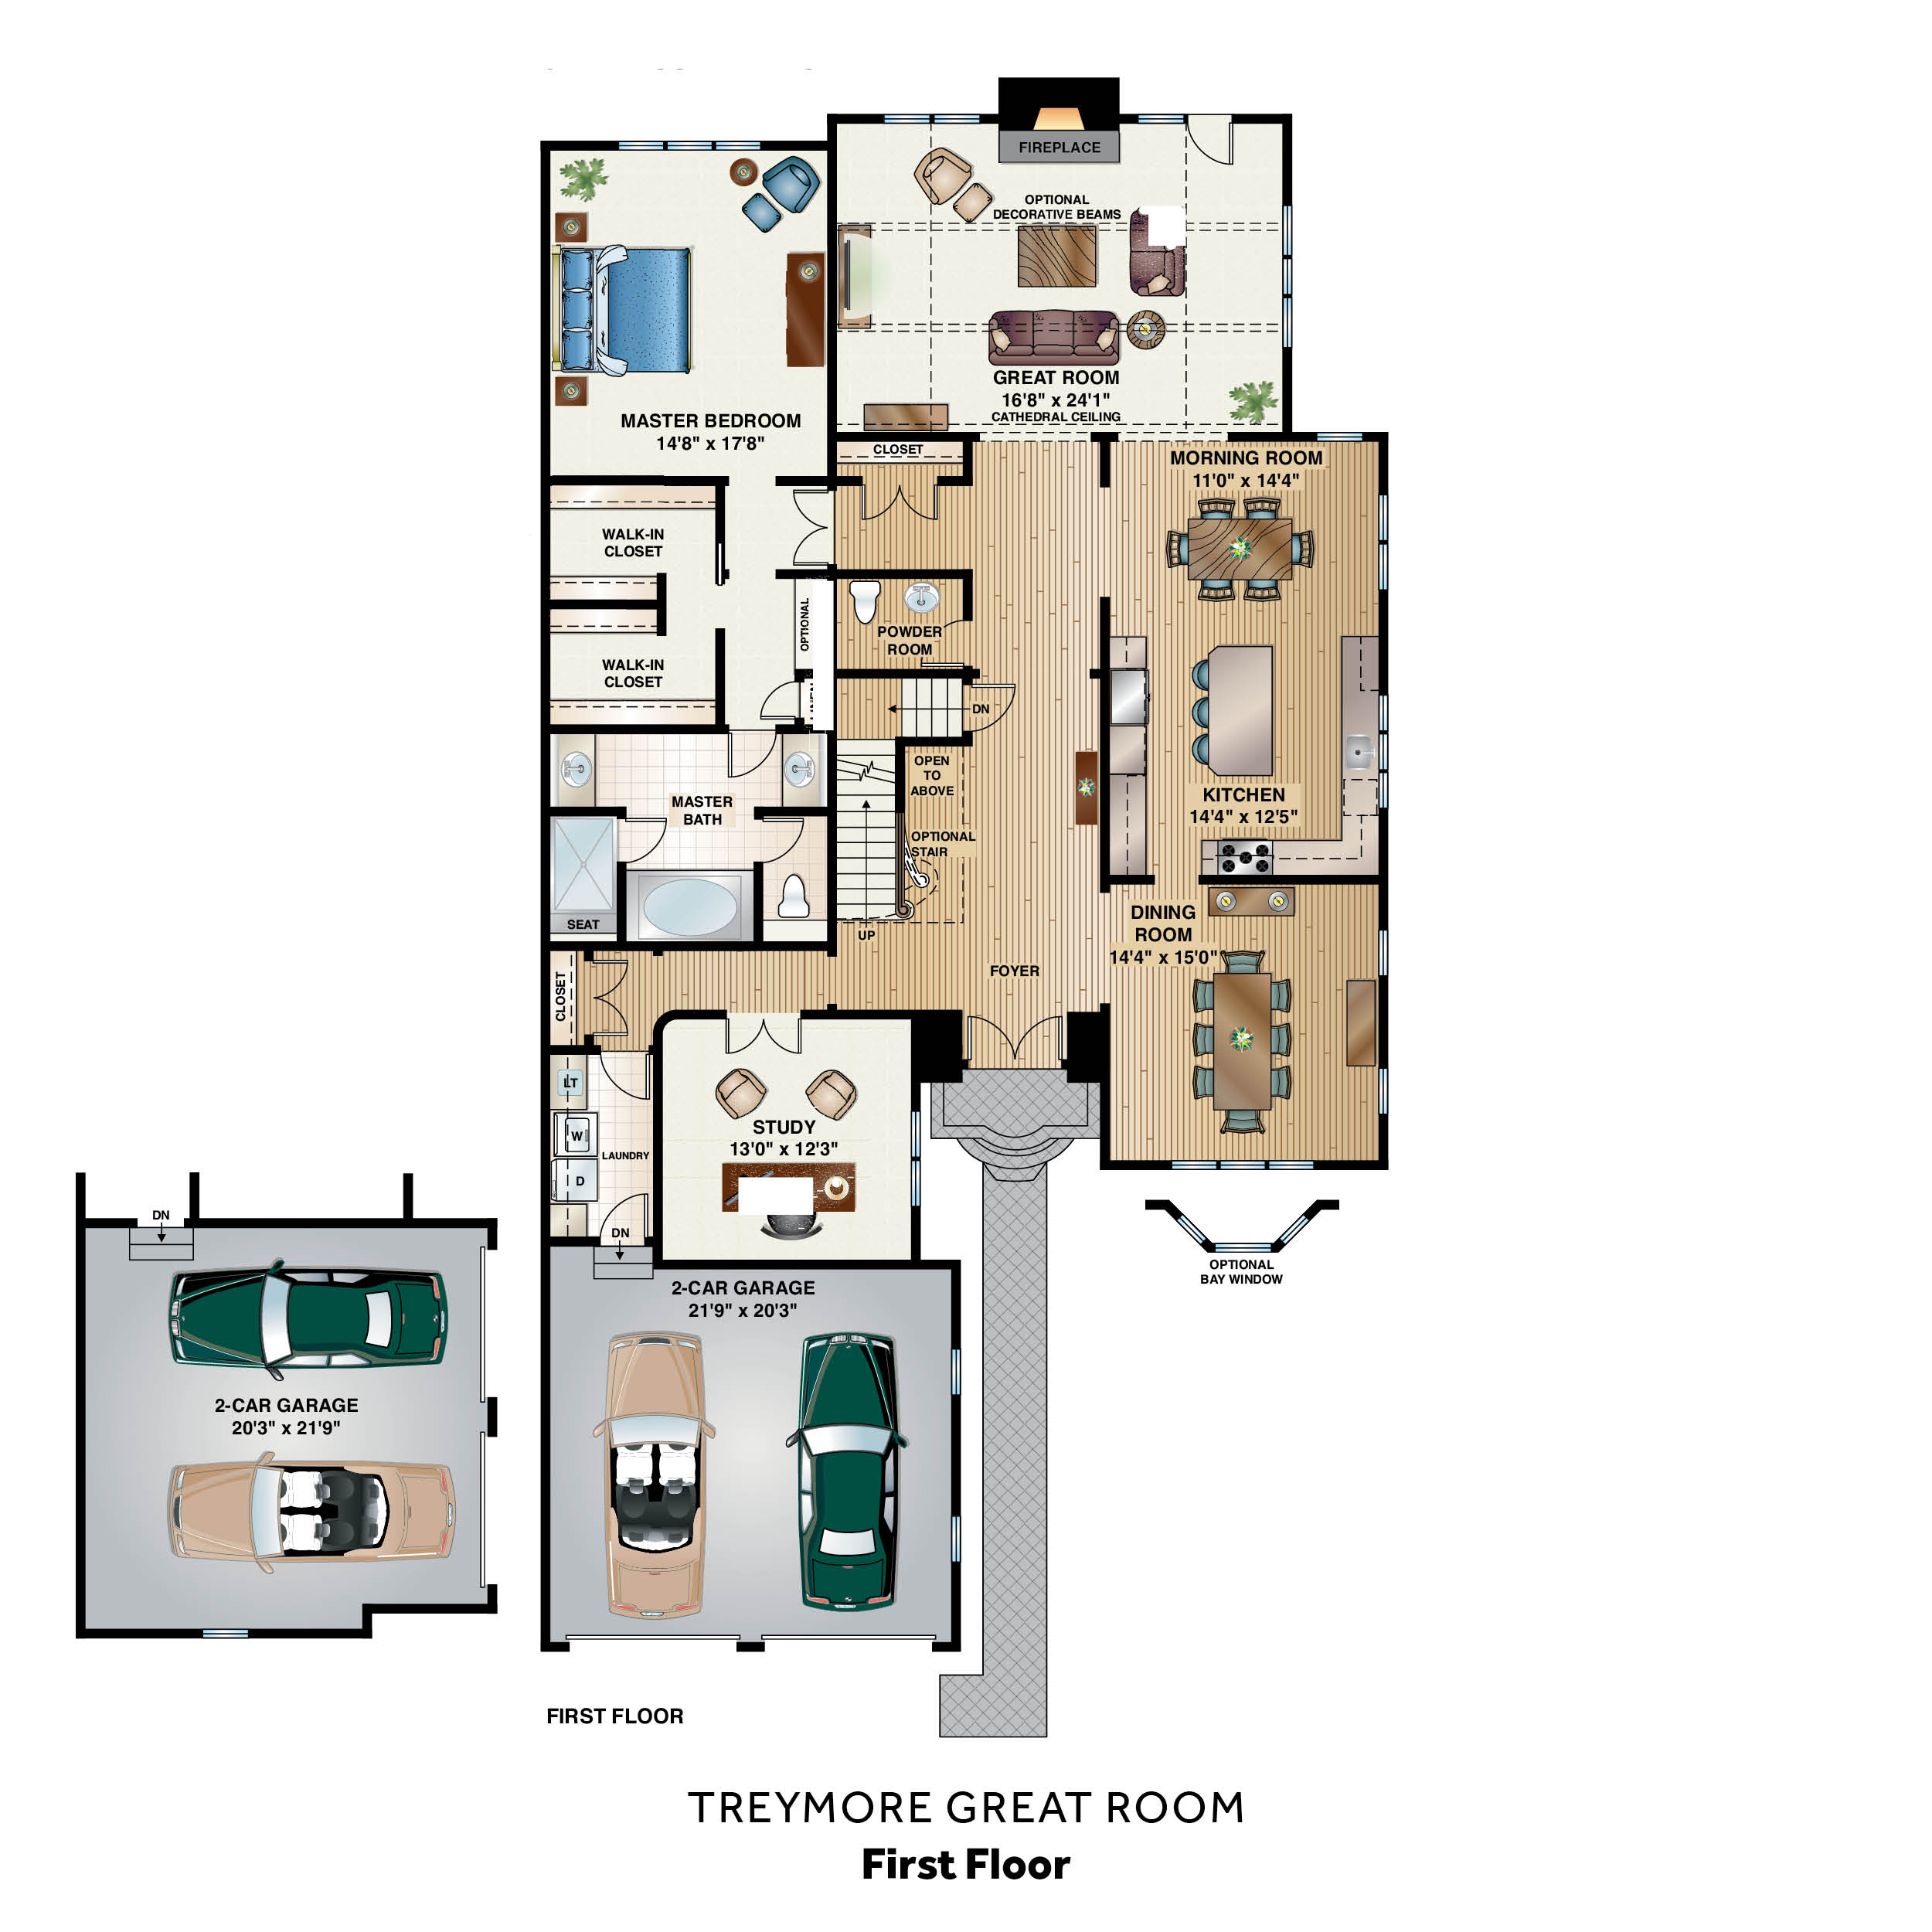 Custom carriage home the treymore great room the for House plans with great room in front